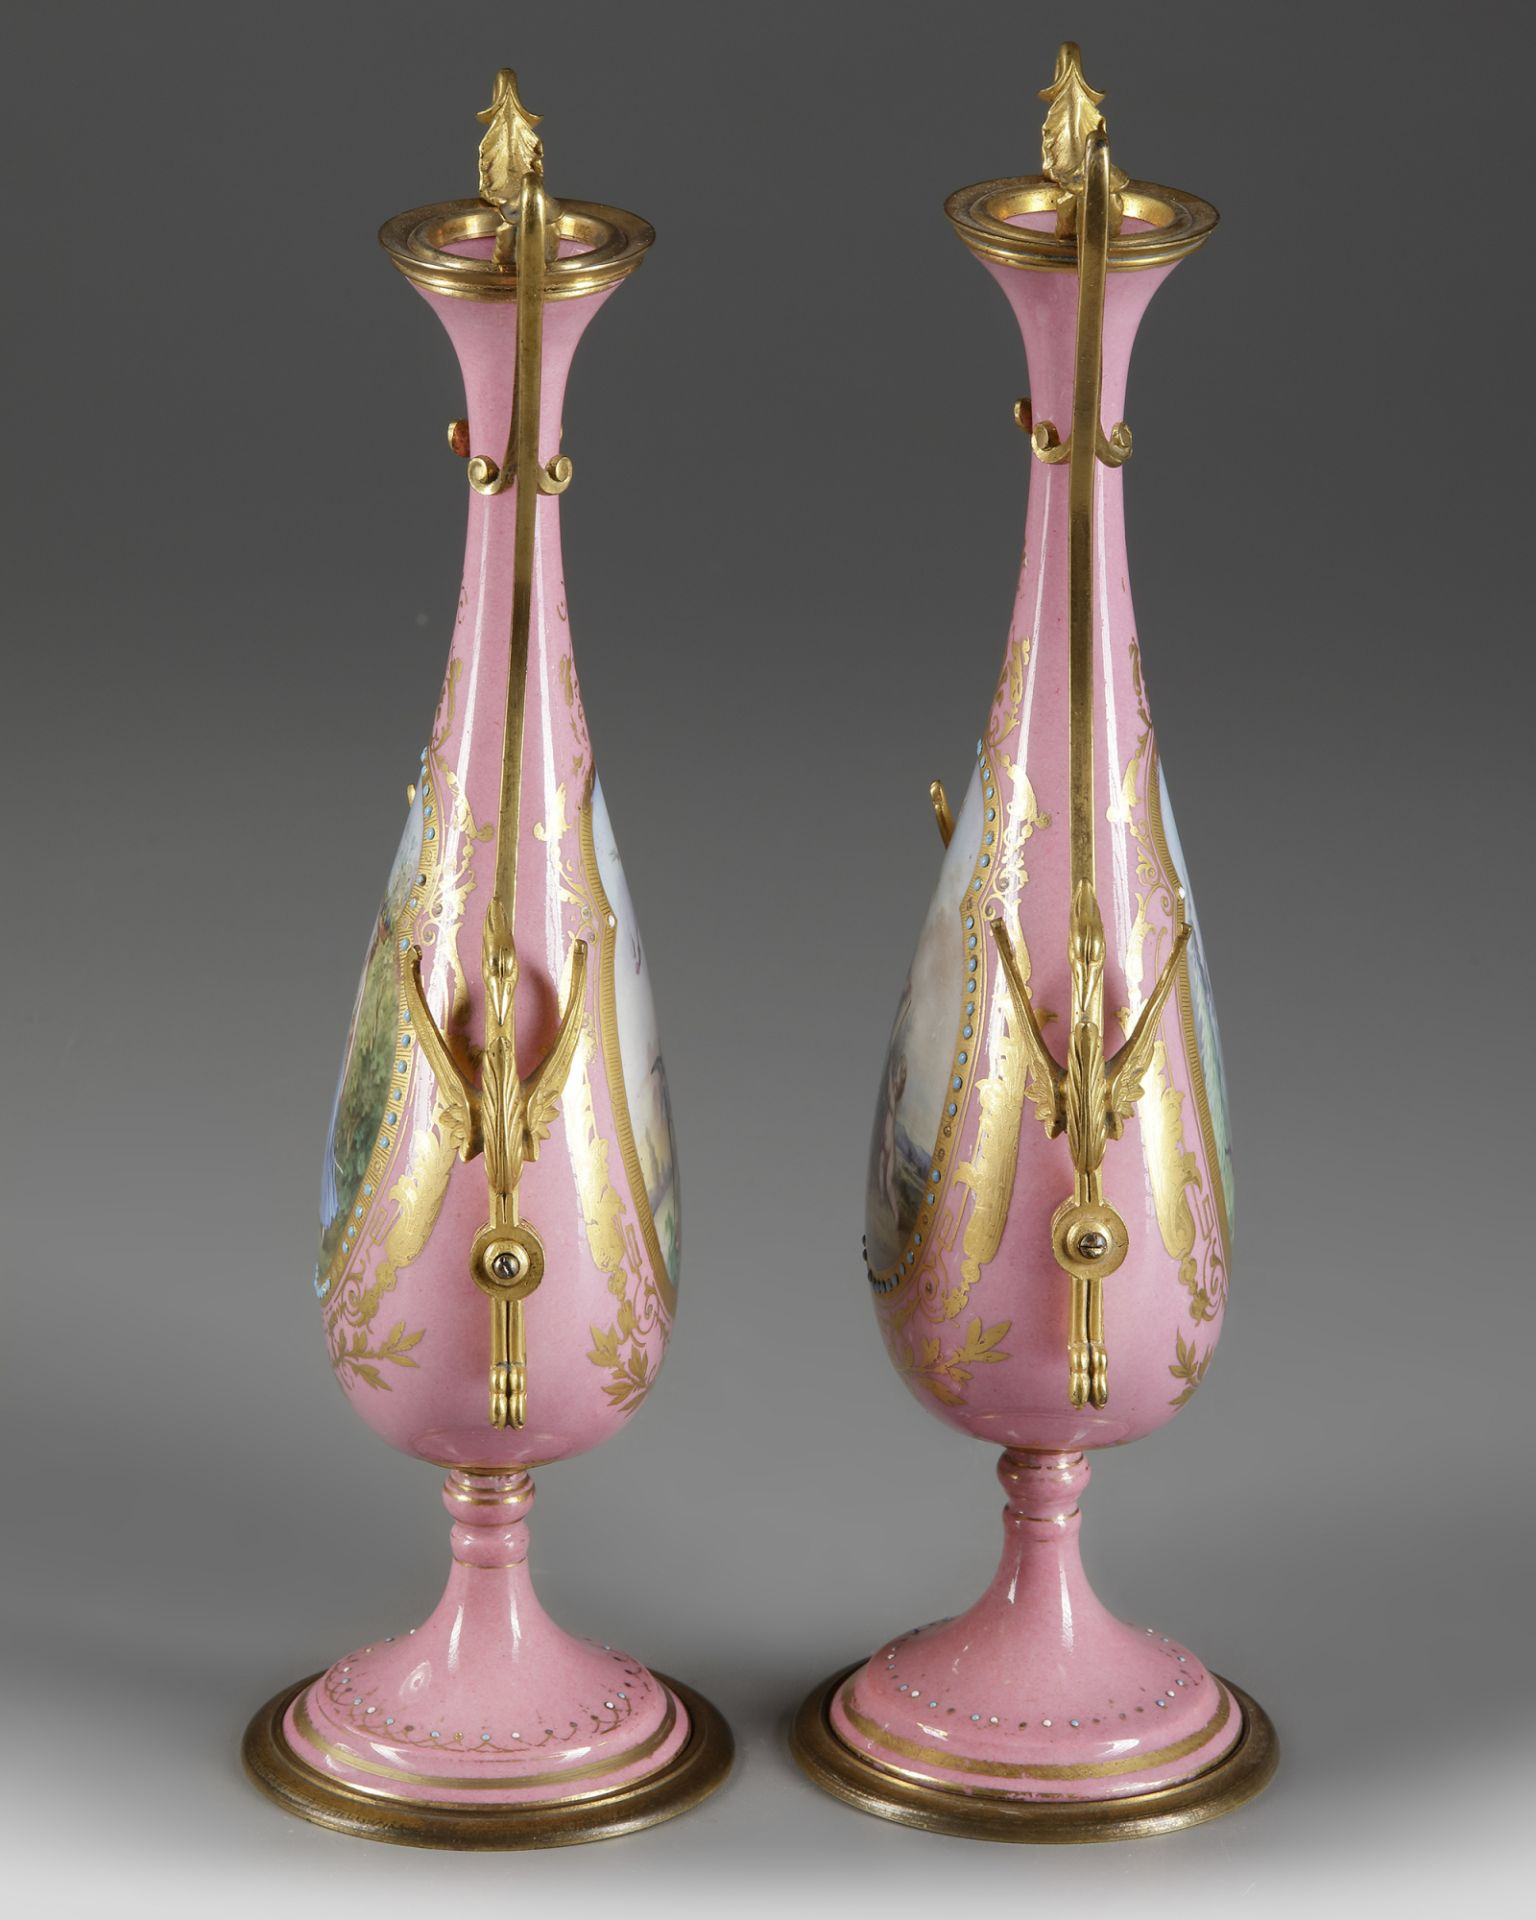 A PAIR OF FRENCH PINK SEVRES VASES, LATE 19TH CENTURY - Image 3 of 4